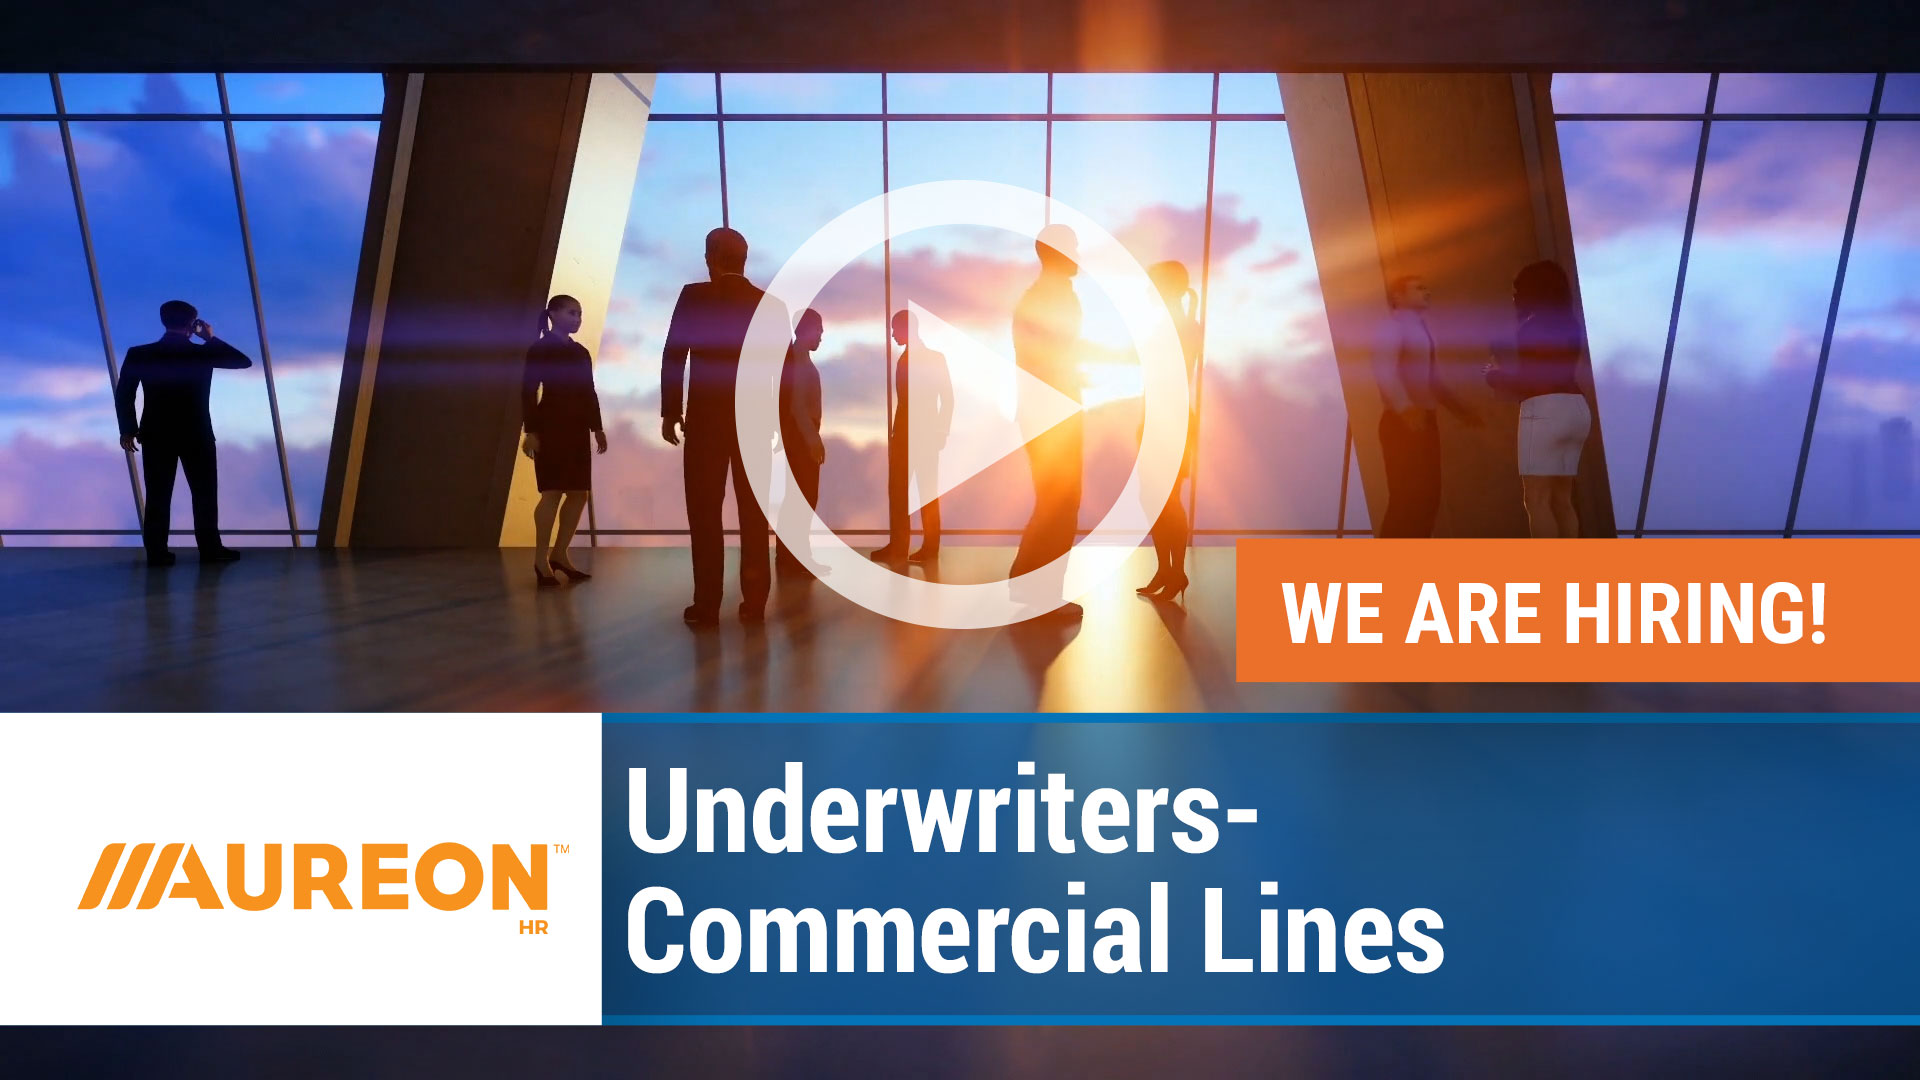 Watch our careers video for available job opening Underwriters - Commercial Lines in Des Moines, Iowa